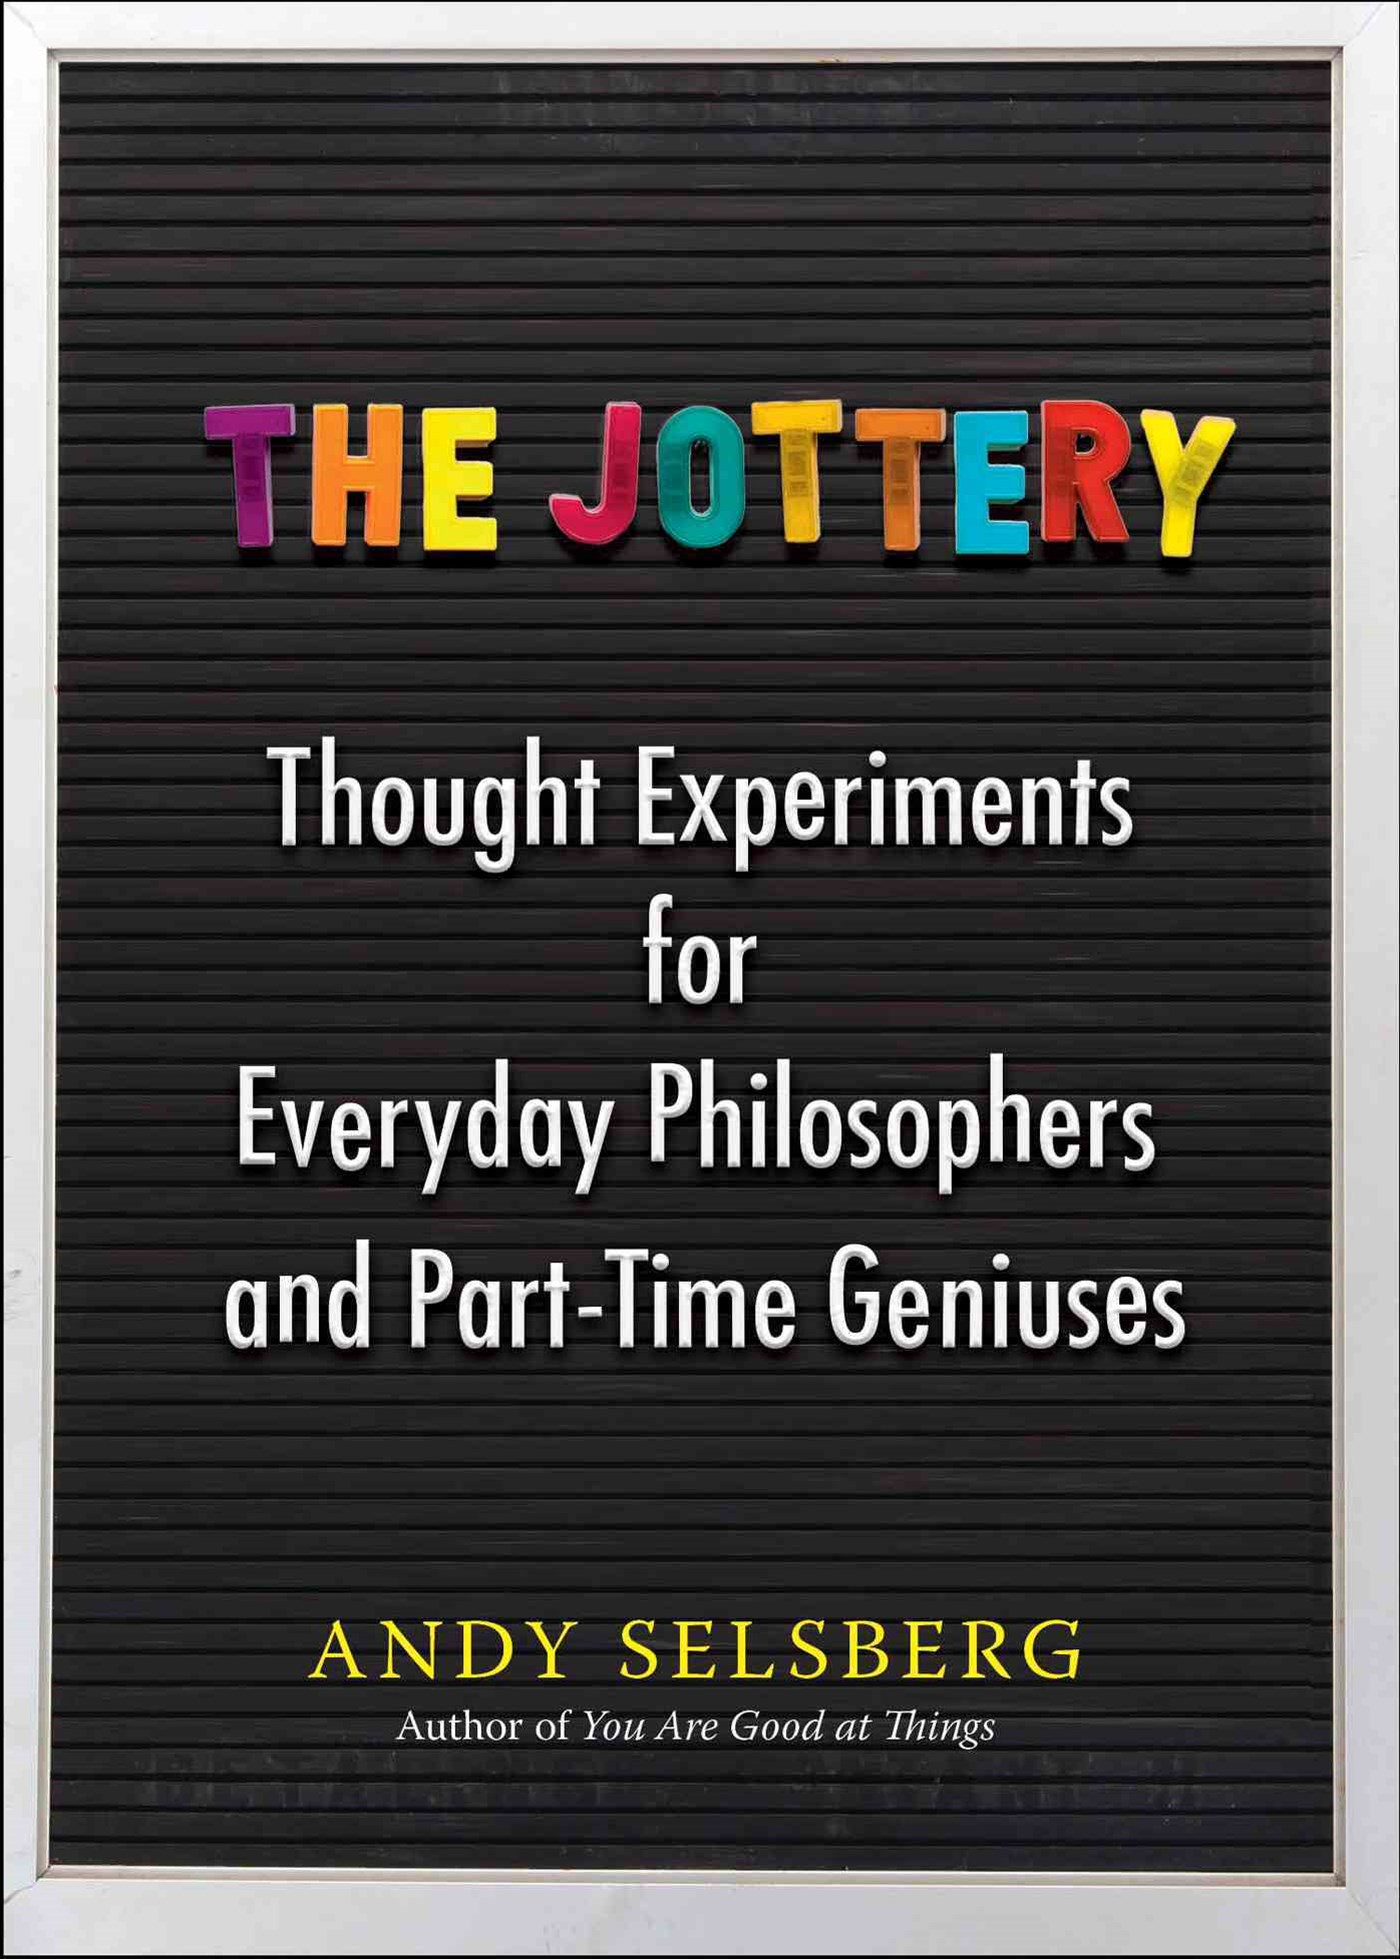 The Jottery: Thought Experiments for Everyday Philosophers and Part-TimeGeniuses